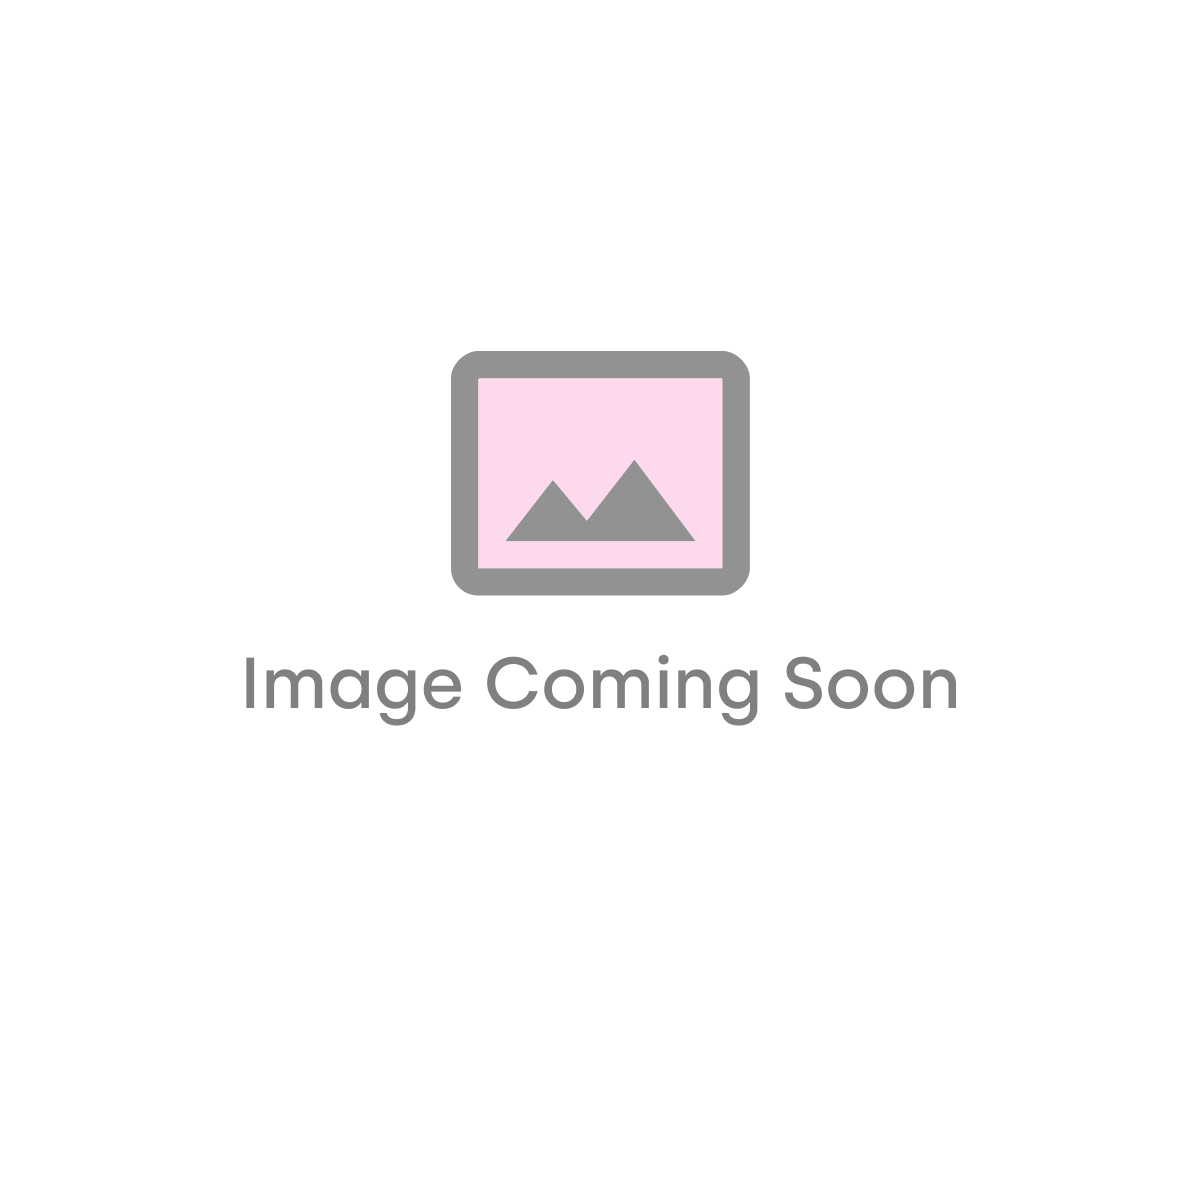 Roma Straight Heated Towel Rail  - 1200mm x 500mm - Anthracite (19719)